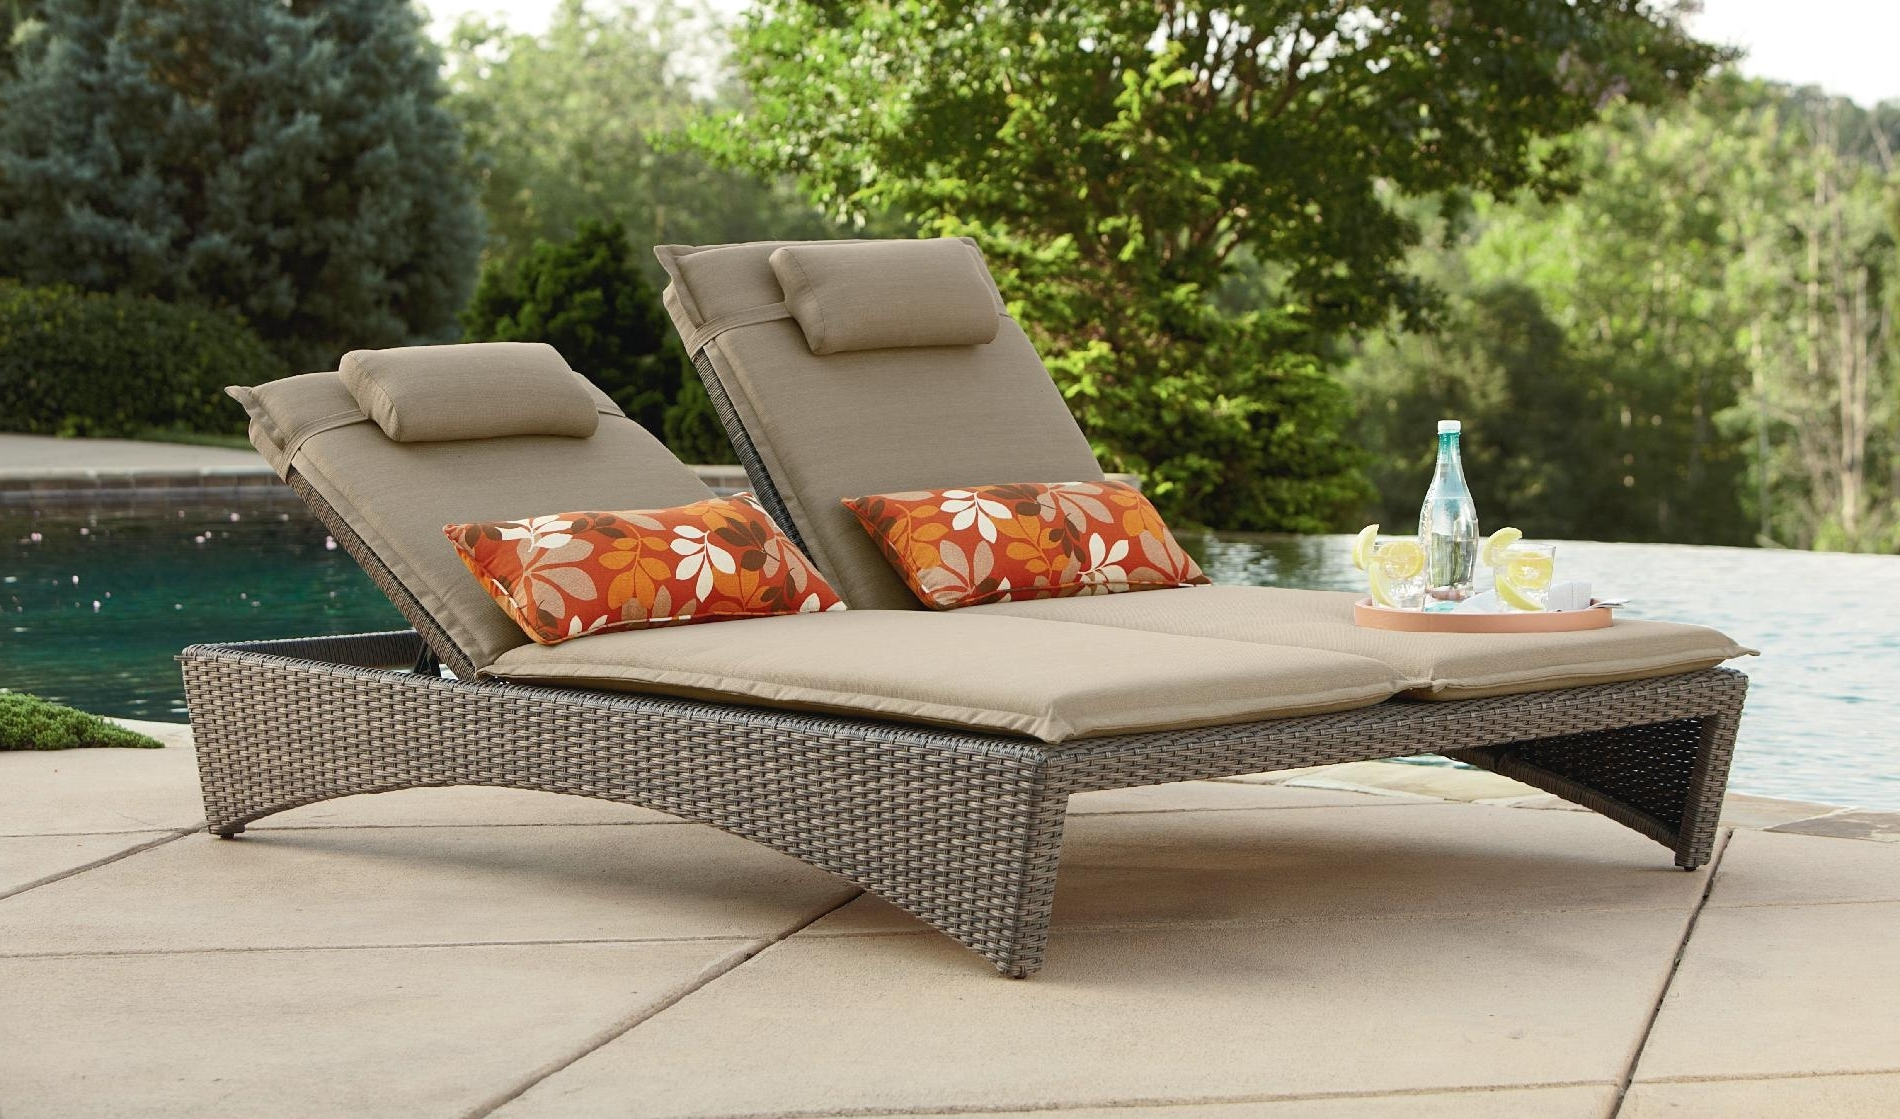 Most Recently Released Best Pool Chaise Lounge Chairs — Bed And Shower : Decorating Pool Regarding Outdoor Pool Furniture Chaise Lounges (View 7 of 15)